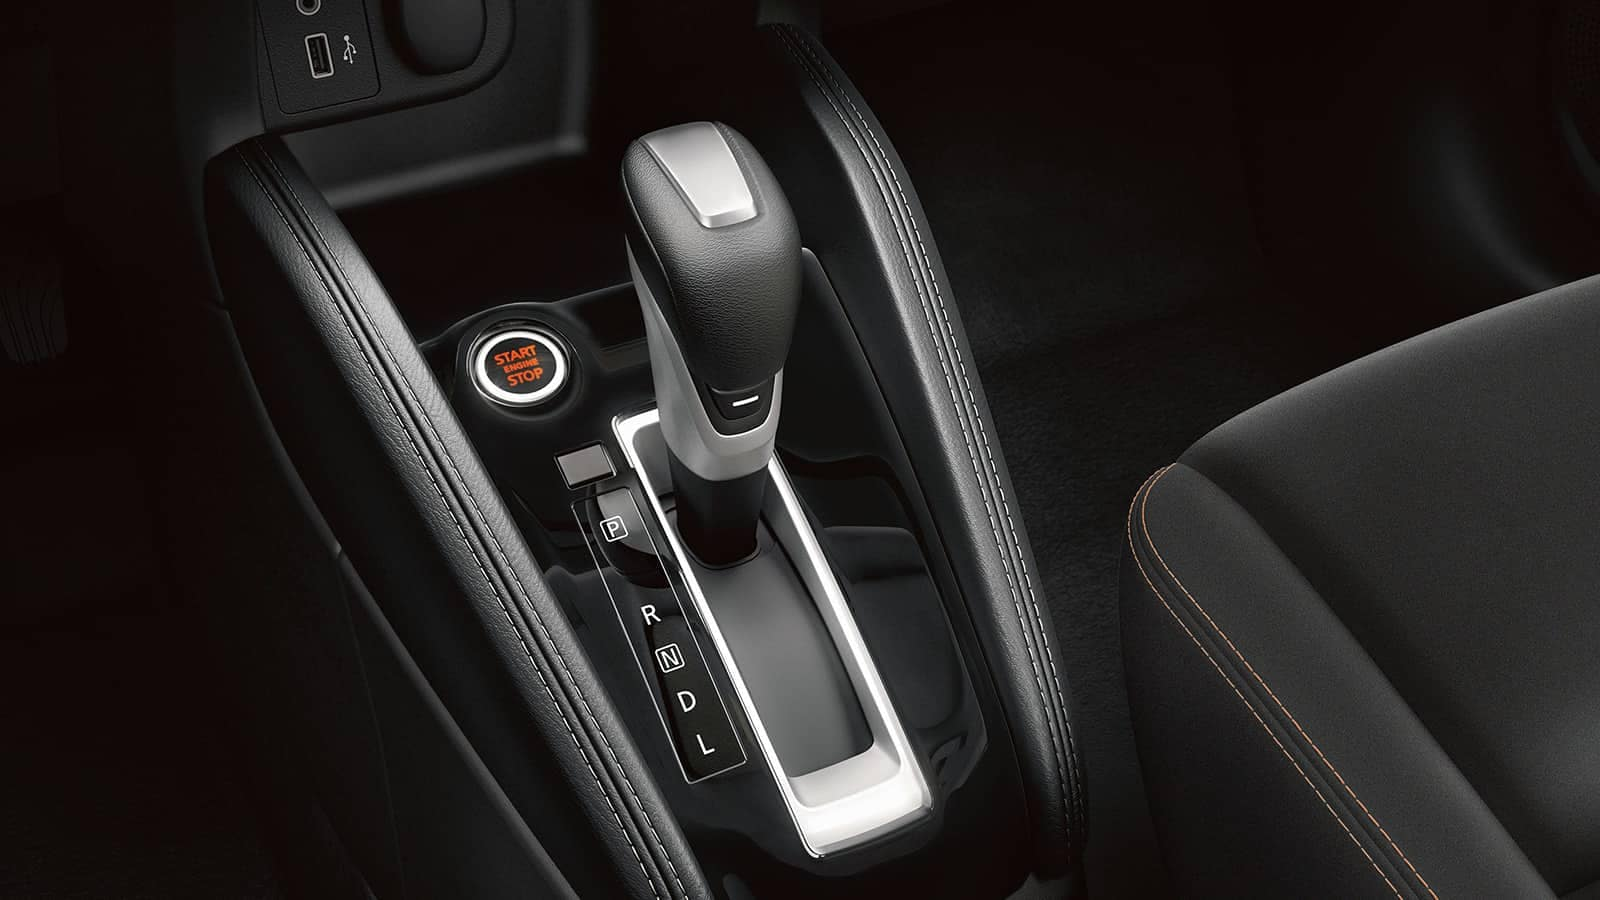 2019 Nissan Kicks shifter